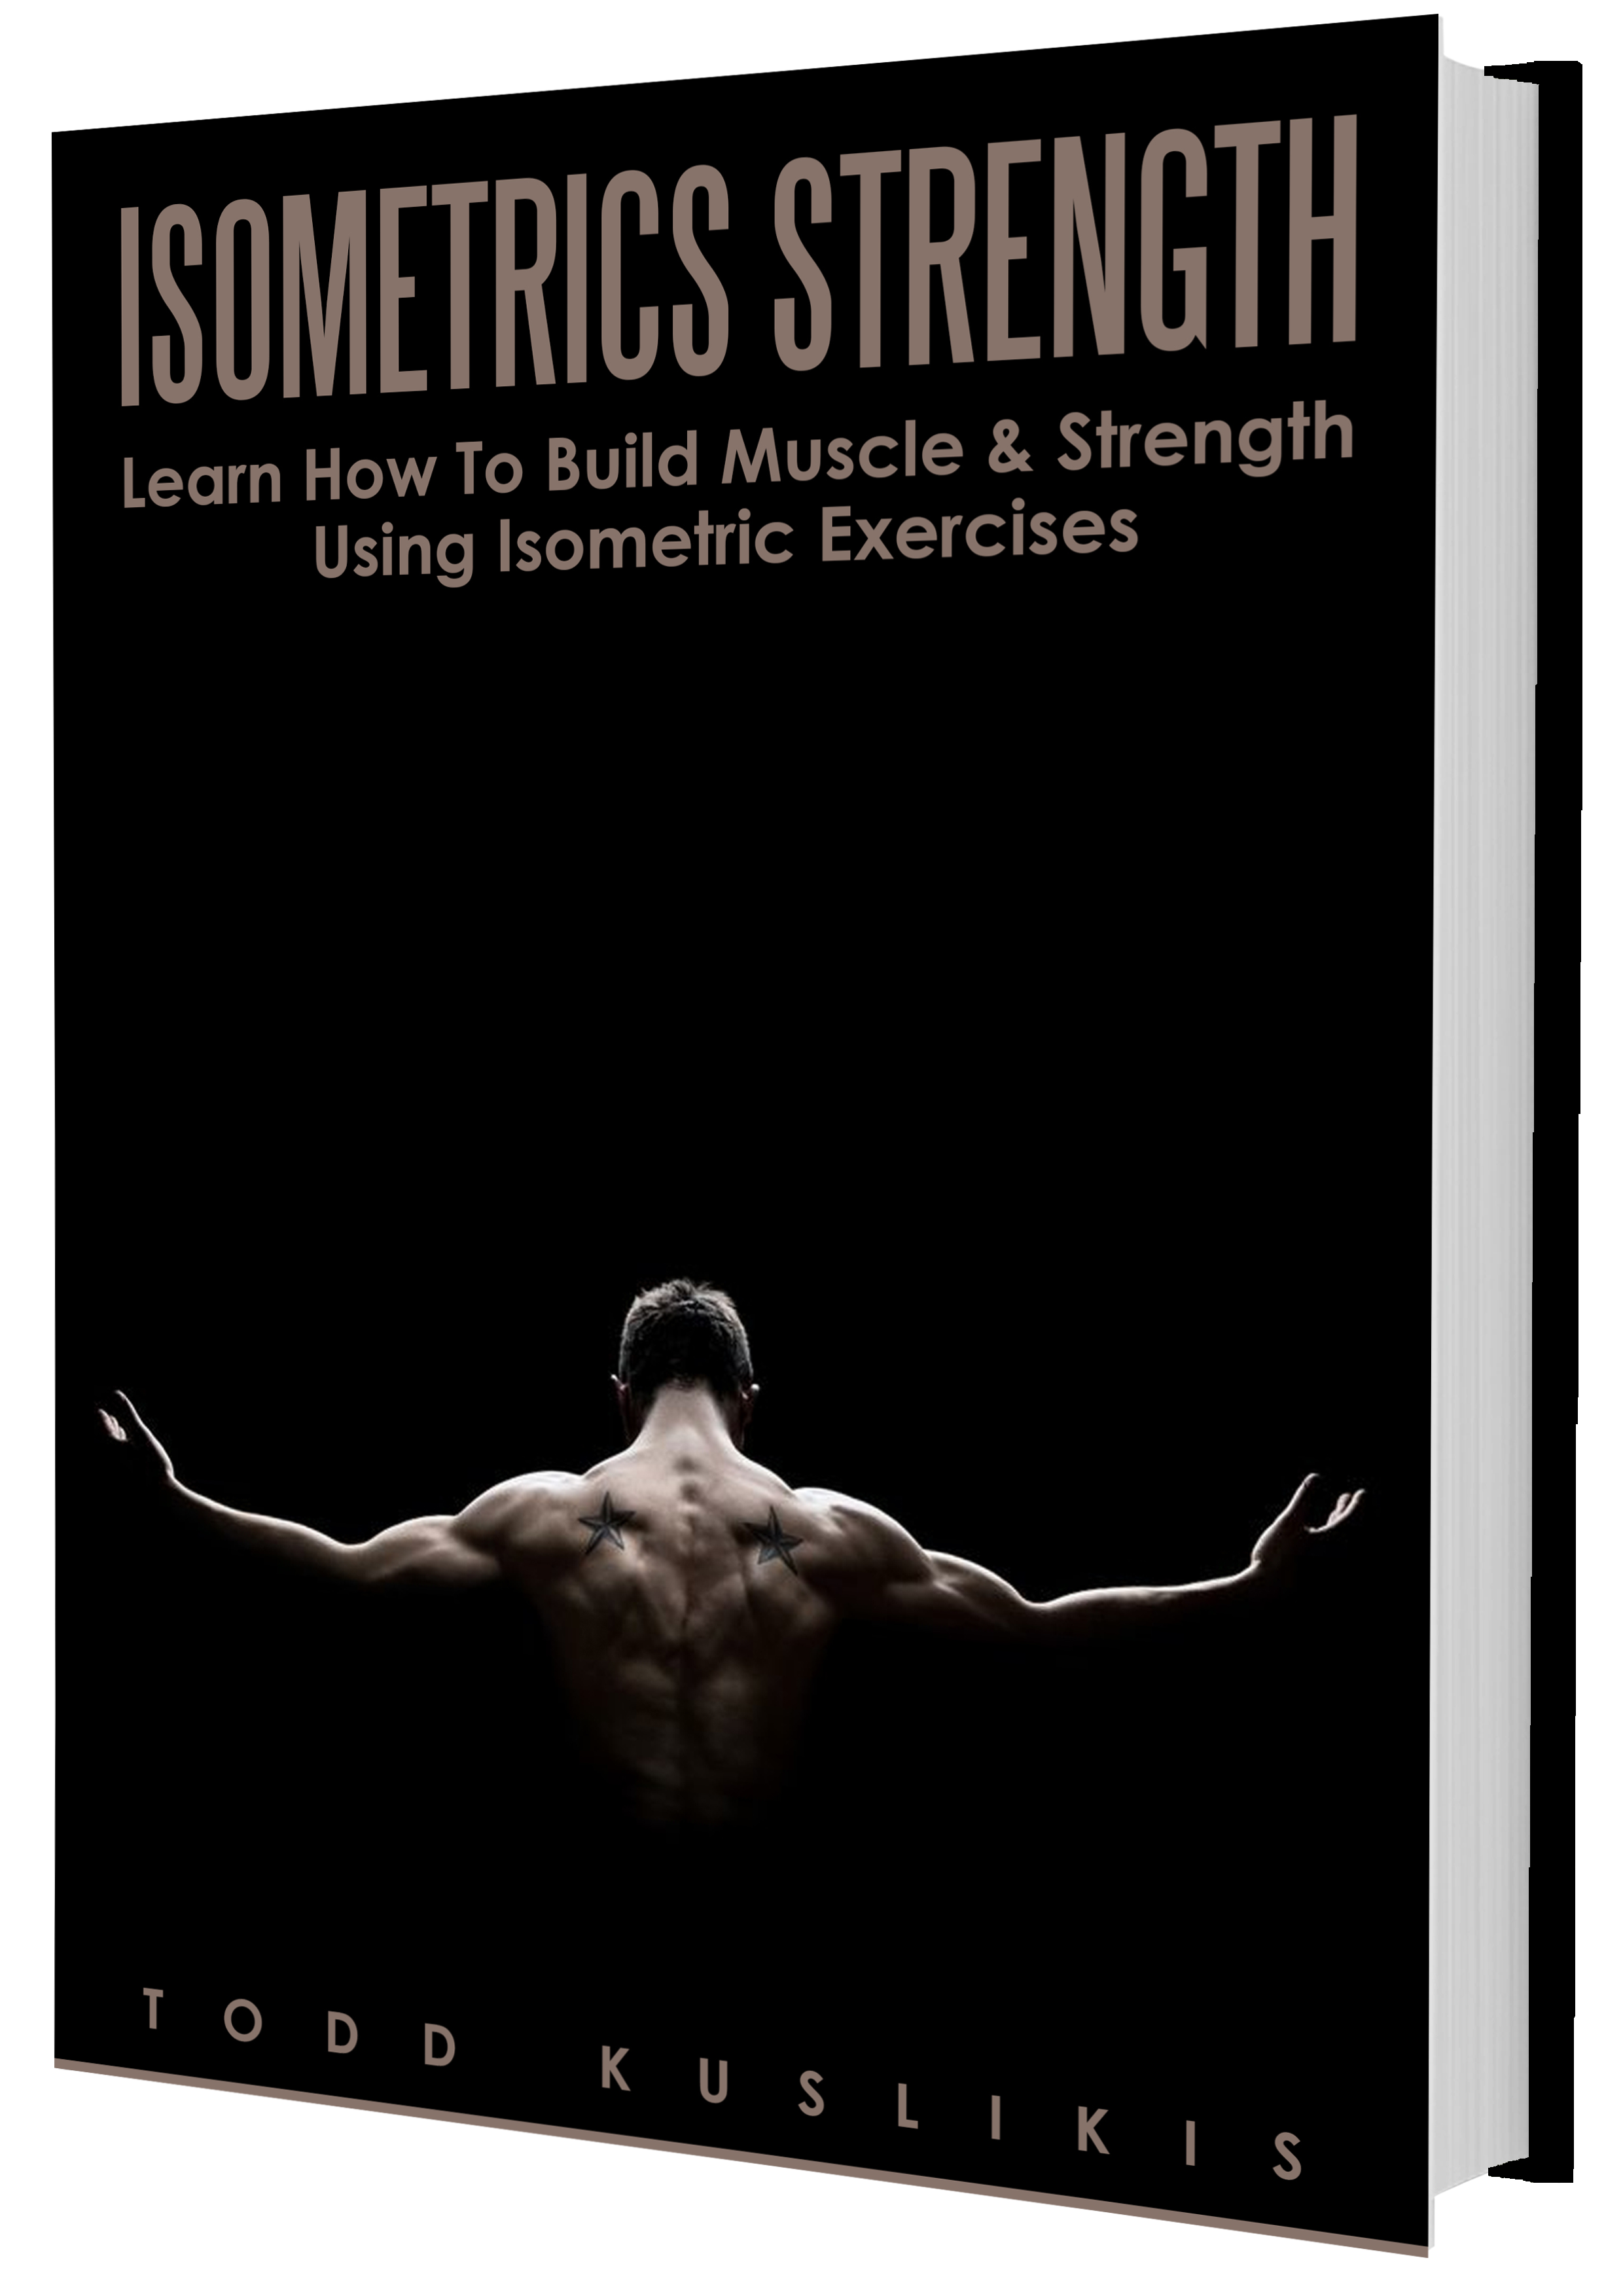 Best Workout For Building Power And Strength